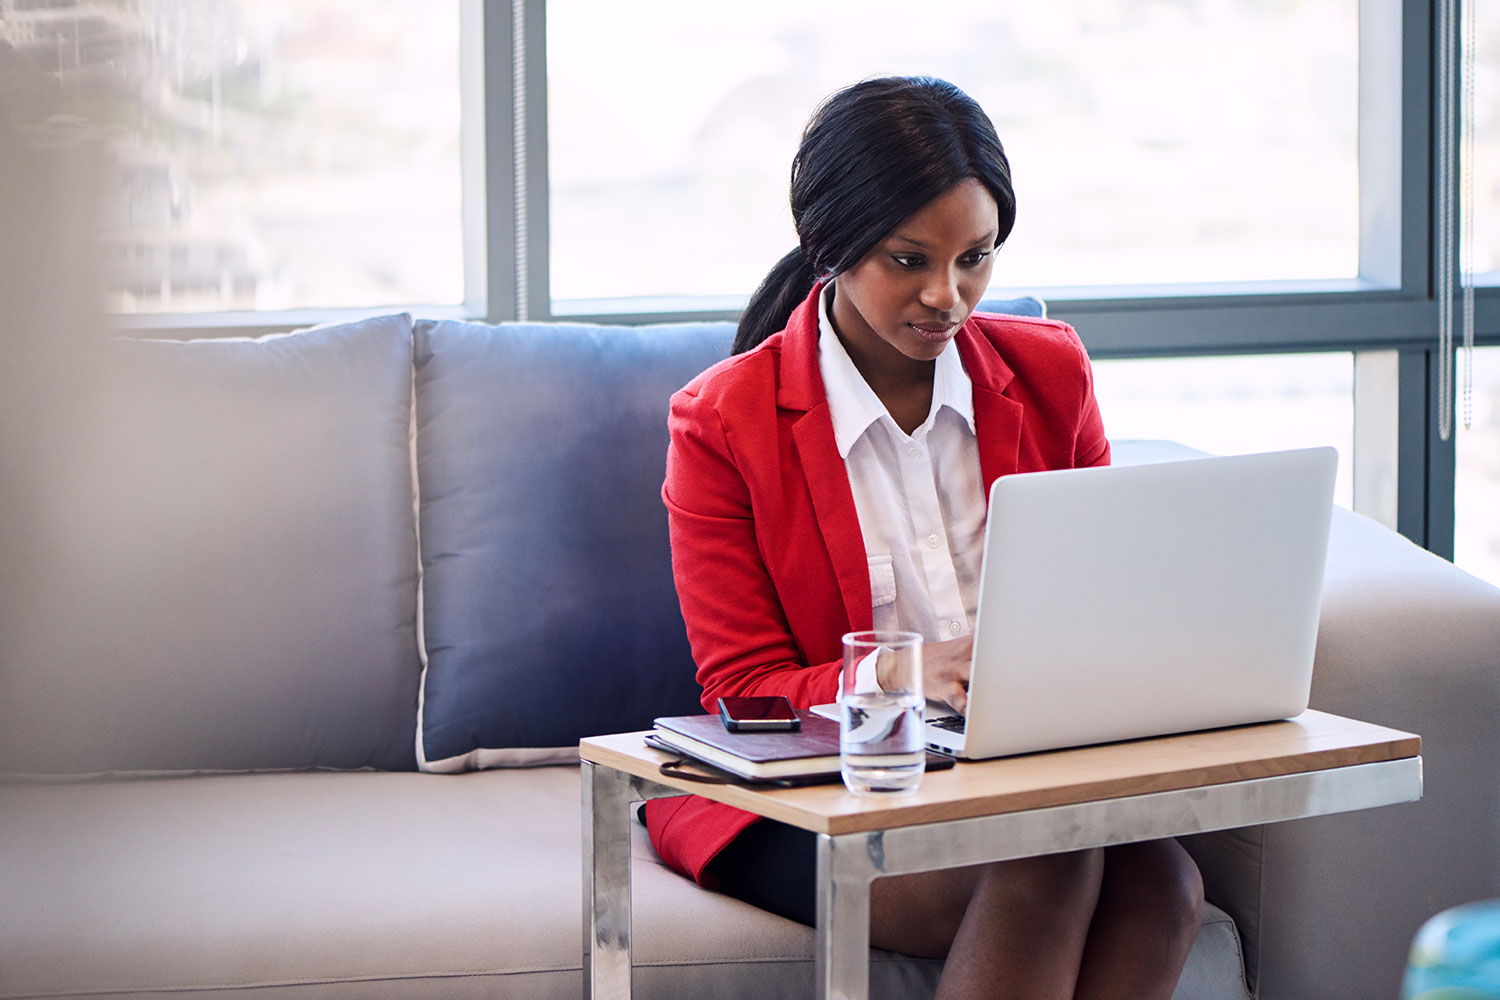 Woman in red jacket on laptop.